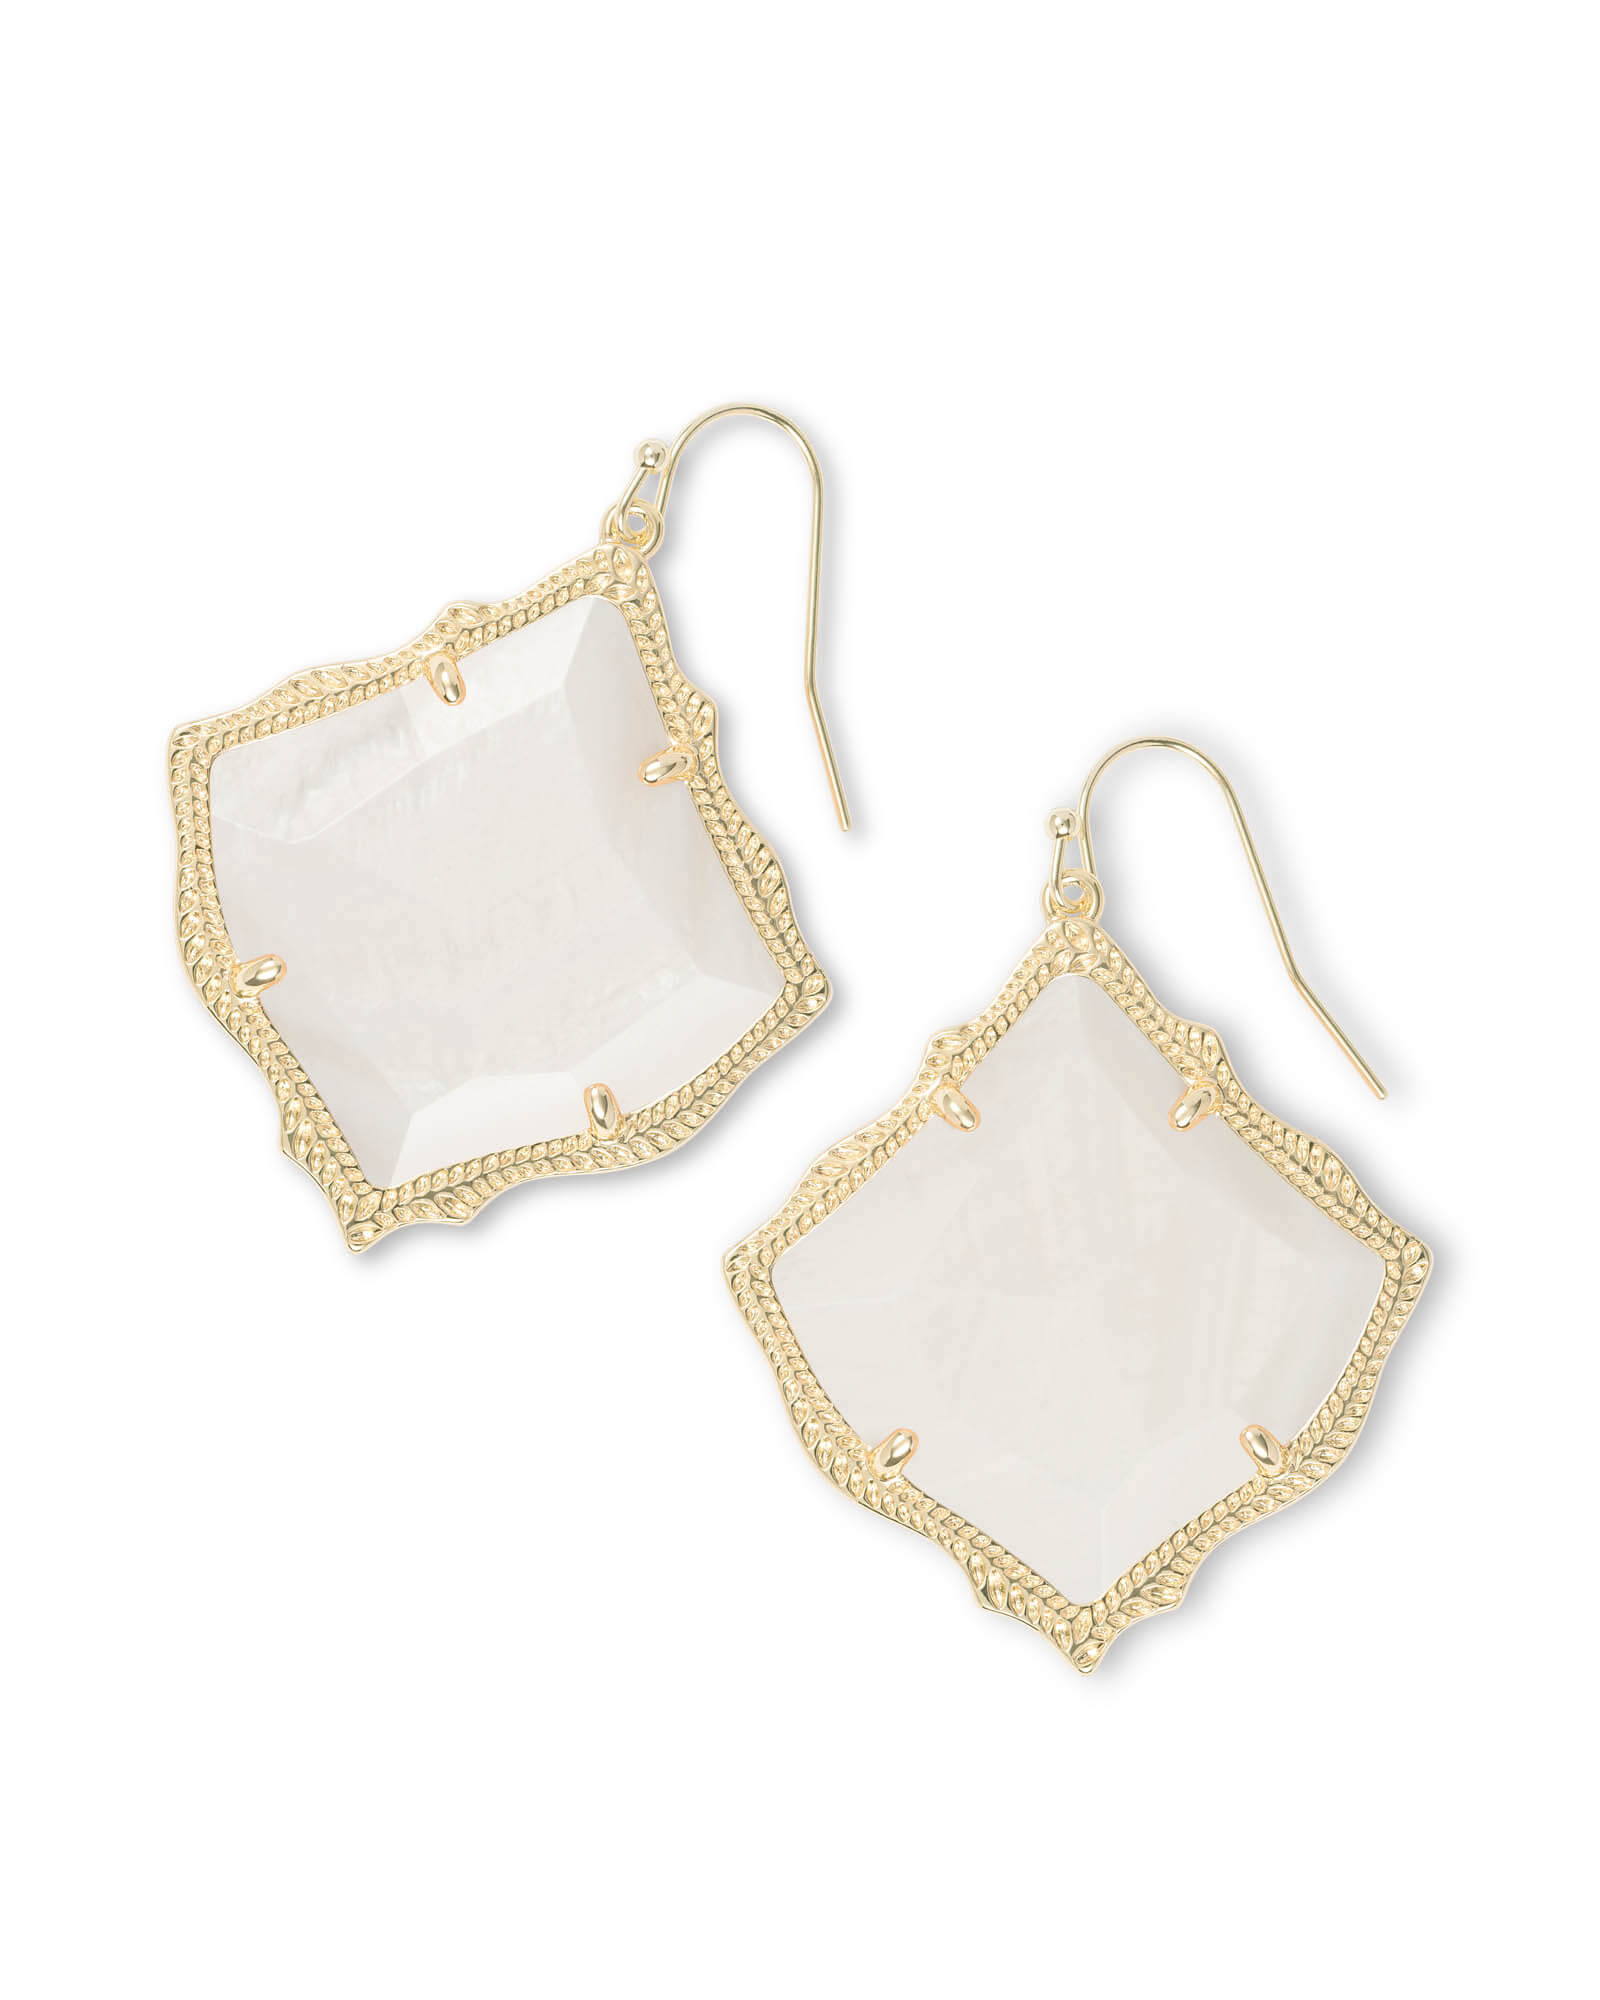 Kirsten Gold Drop Earrings in White Pearl